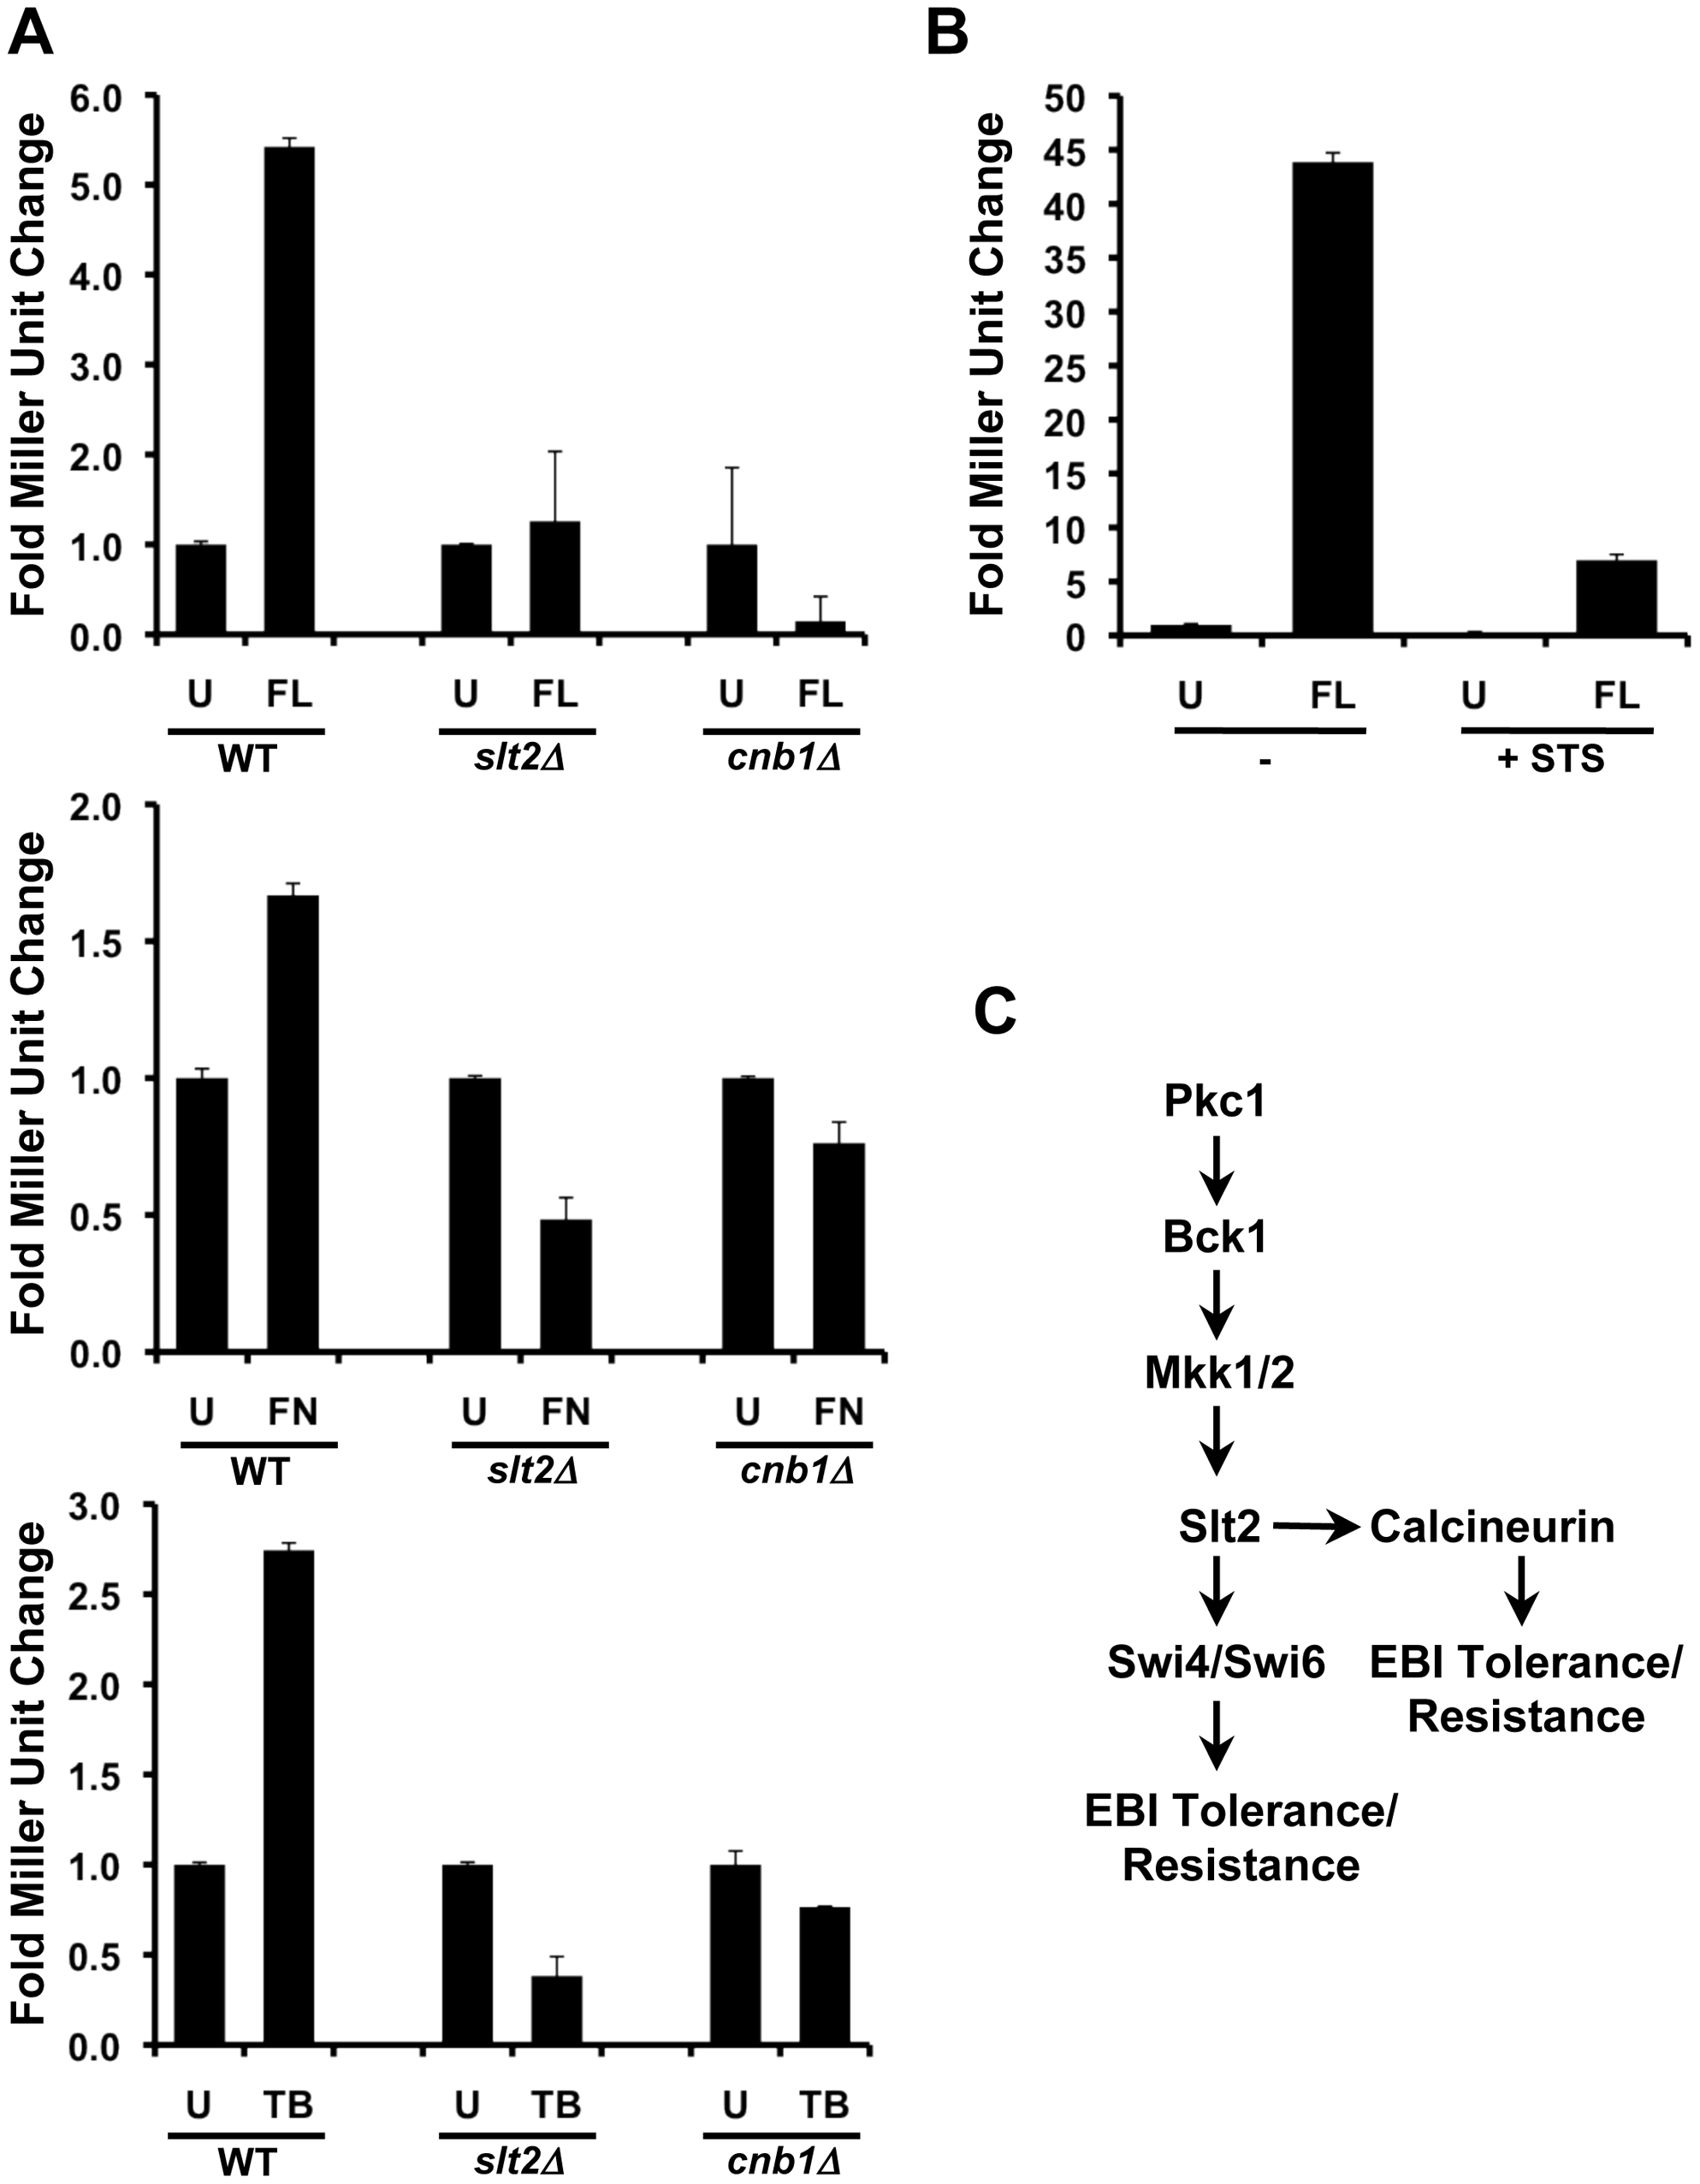 Compromising PKC-MAPK signaling blocks calcineurin activation in response to ergosterol biosynthesis inhibitors in <i>S. cerevisiae</i>.